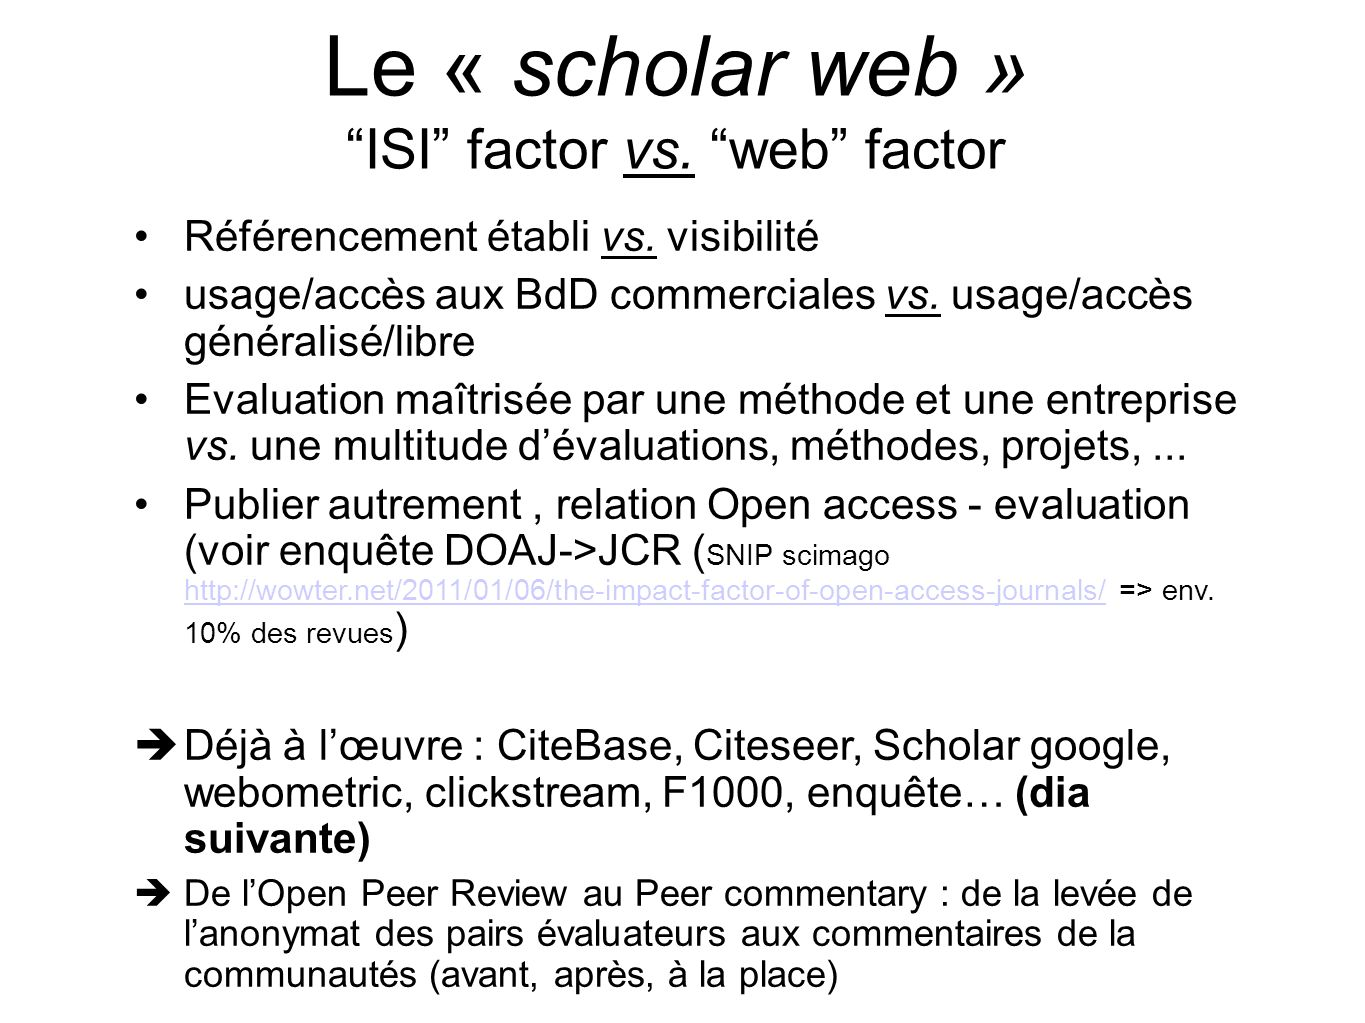 Autres indicateurs Citebase, 1999, rapport téléchargements/citations http://www.citebase.org/ http://www.citebase.org/ Citeseer, Associations des refs, commentaires et votes http://citeseer.ist.psu.edu http://citeseer.ist.psu.edu F1000, 2002, « groupes qualités » http://www.f1000biology.com/home/ http://www.f1000biology.com/home/ IRRA (2005, Institutional Repositories and Research Assessment), RAE Software for Institutional Repositories : http://irra.eprints.org/white/ http://irra.eprints.org/white/ Google citation, http://scholar.google.com/ http://scholar.google.com/ FiveStars pour une revue http://www.dlib.org/dlib/january12/shotton/01shotton.html http://www.dlib.org/dlib/january12/shotton/01shotton.html Ranking web (2006 - CSIC) http://www.webometrics.info/ http://www.webometrics.info/ principe du Clickstream (cf.